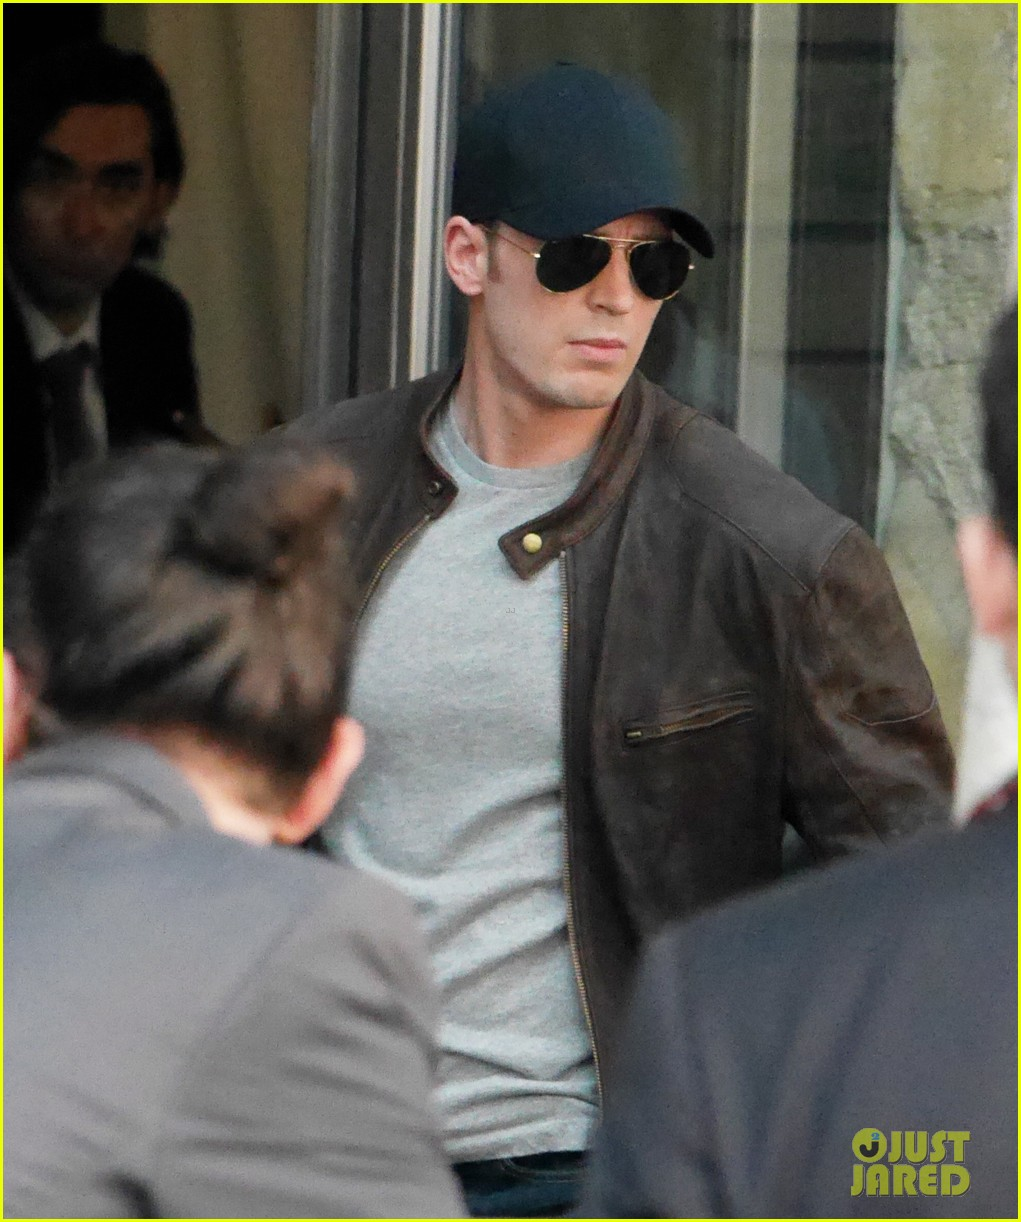 Franchise Marvel/Disney #3 Chris-evans-keeps-filming-captain-america-civil-war-04